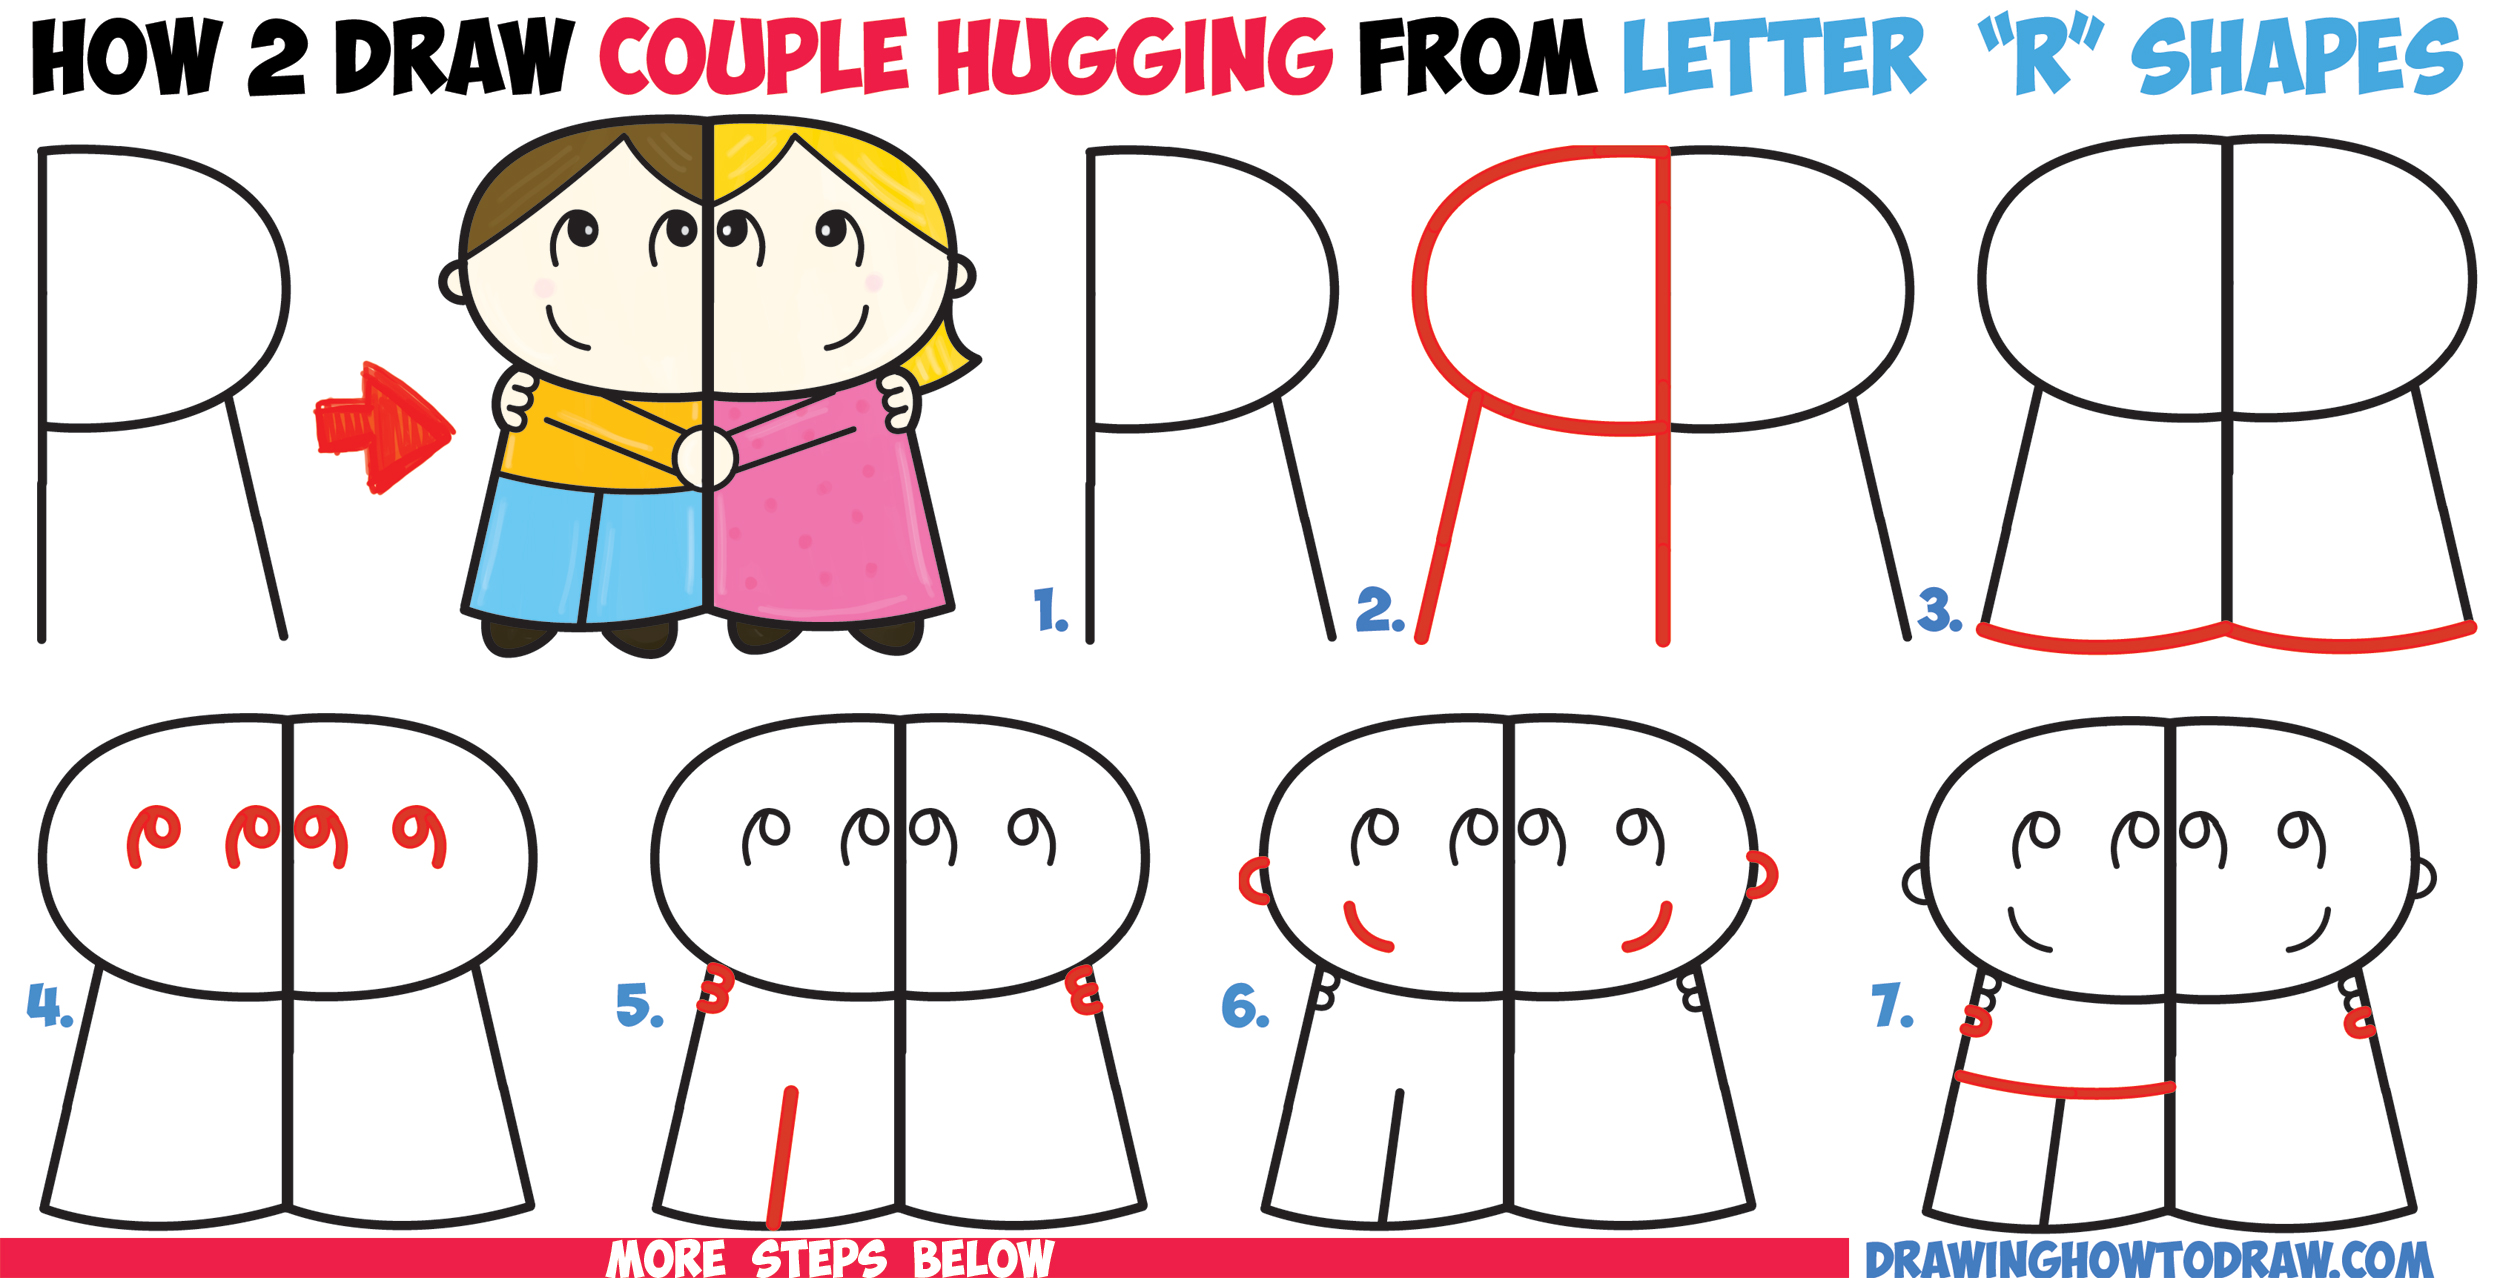 2500x1278 How to Draw Cartoon Couple (Girl and Boy) Hugging from Letter R